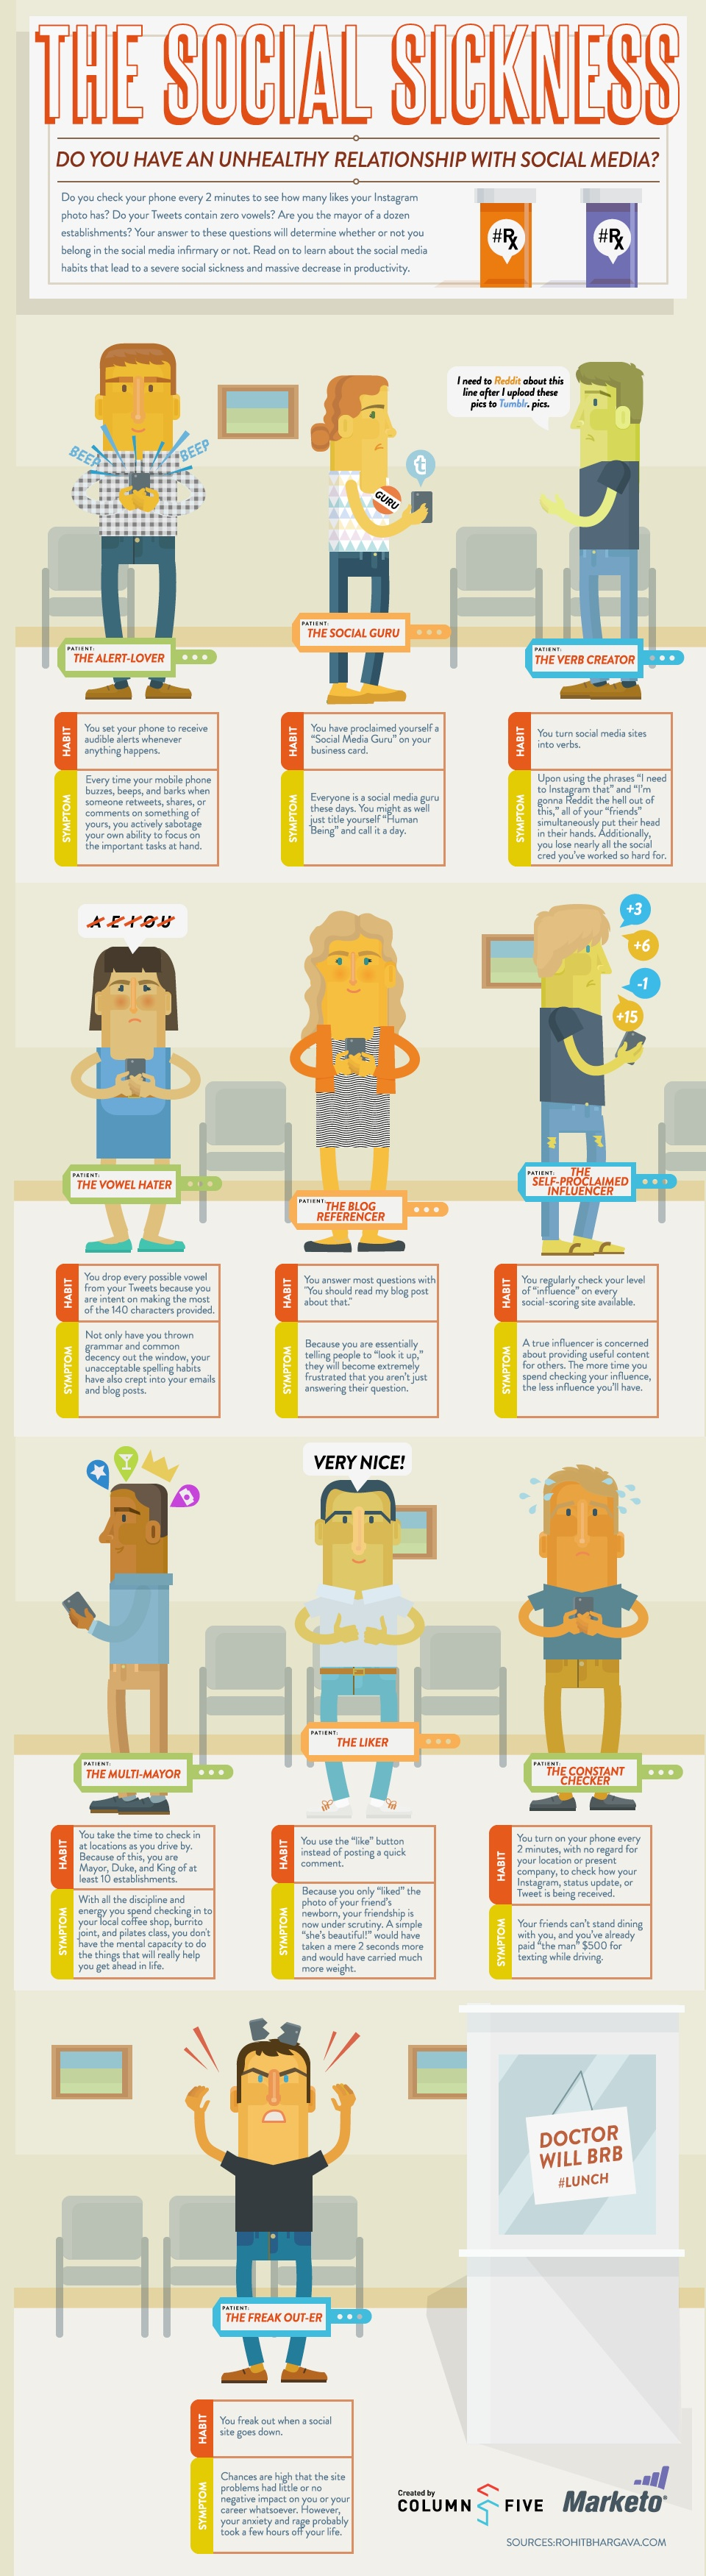 socialaddictsIG The 10 Types of Social Media Addicts [INFOGRAPHIC]